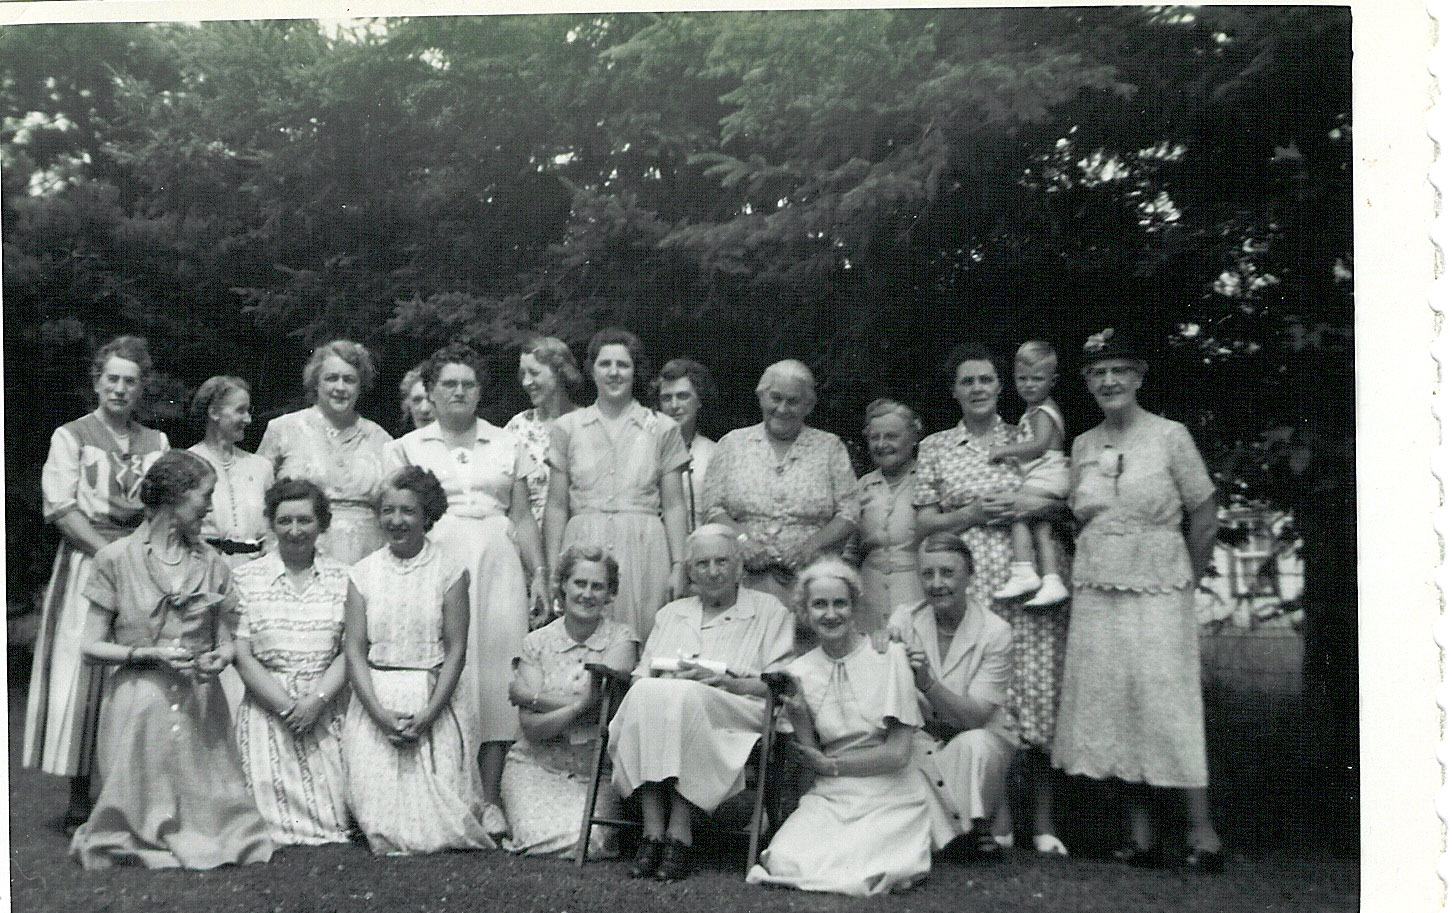 The Women's Auxiliary of the Church of the Redeemer in Rosseau, in the 1950s. Courtesy the Rosseau Historical Society.